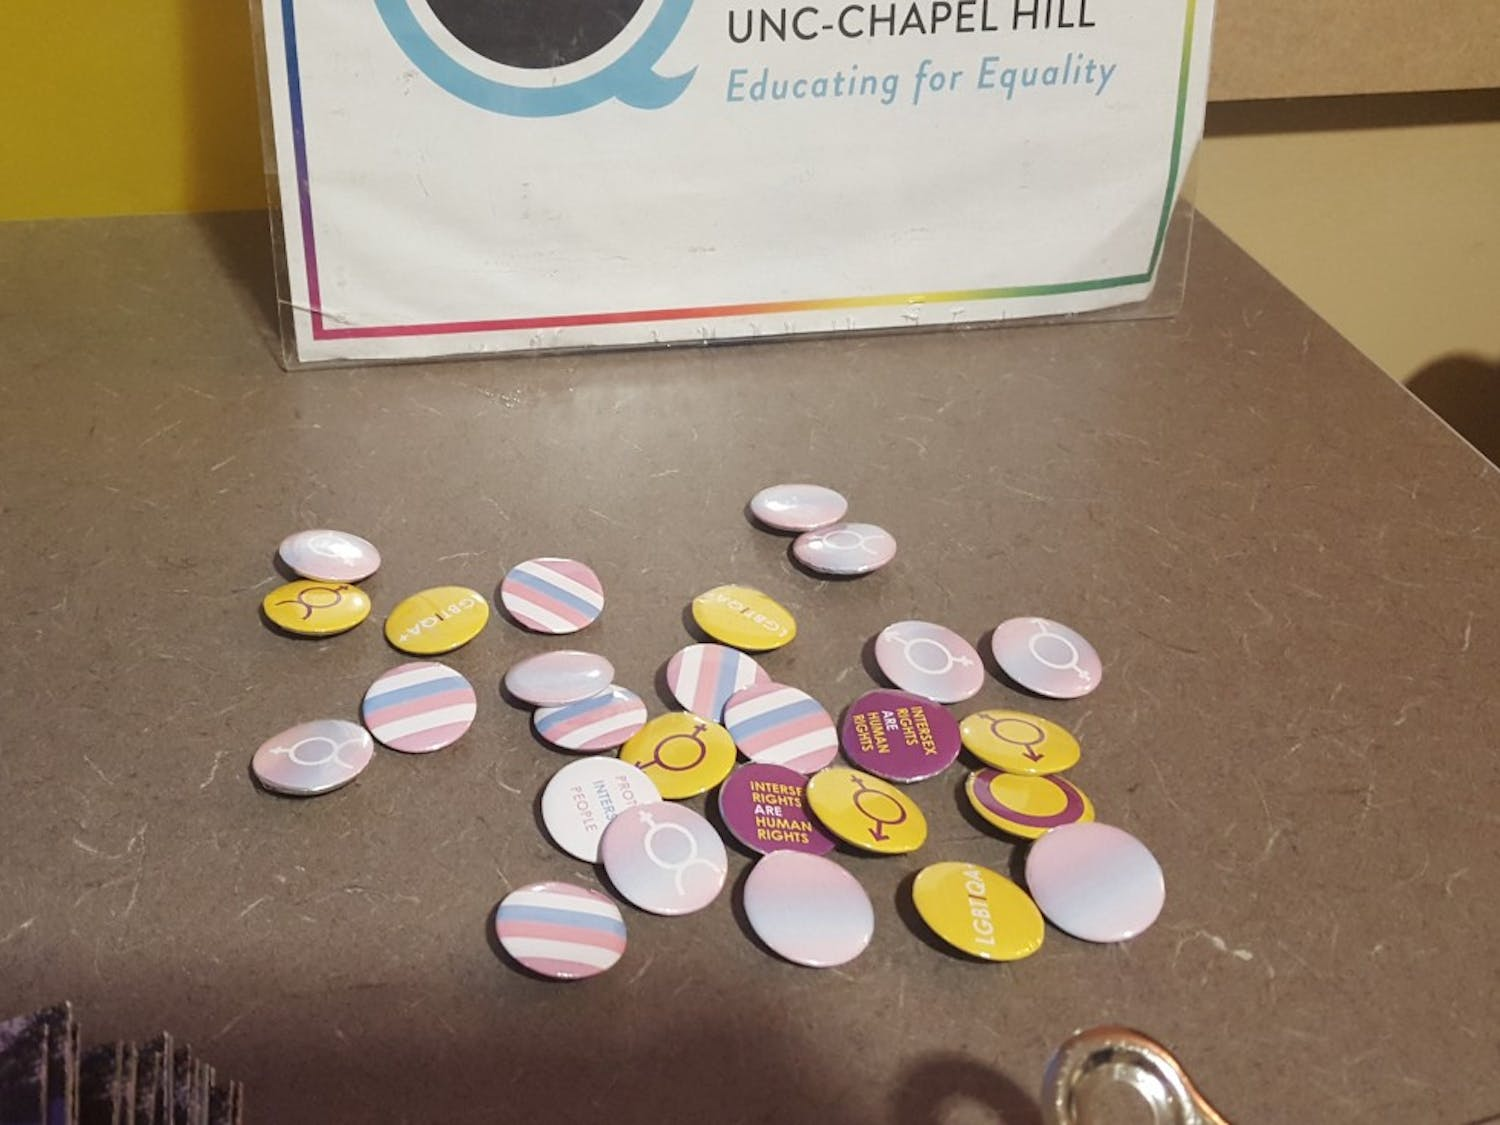 The LGBTQ center handed out buttons for intersex awareness and acceptance.